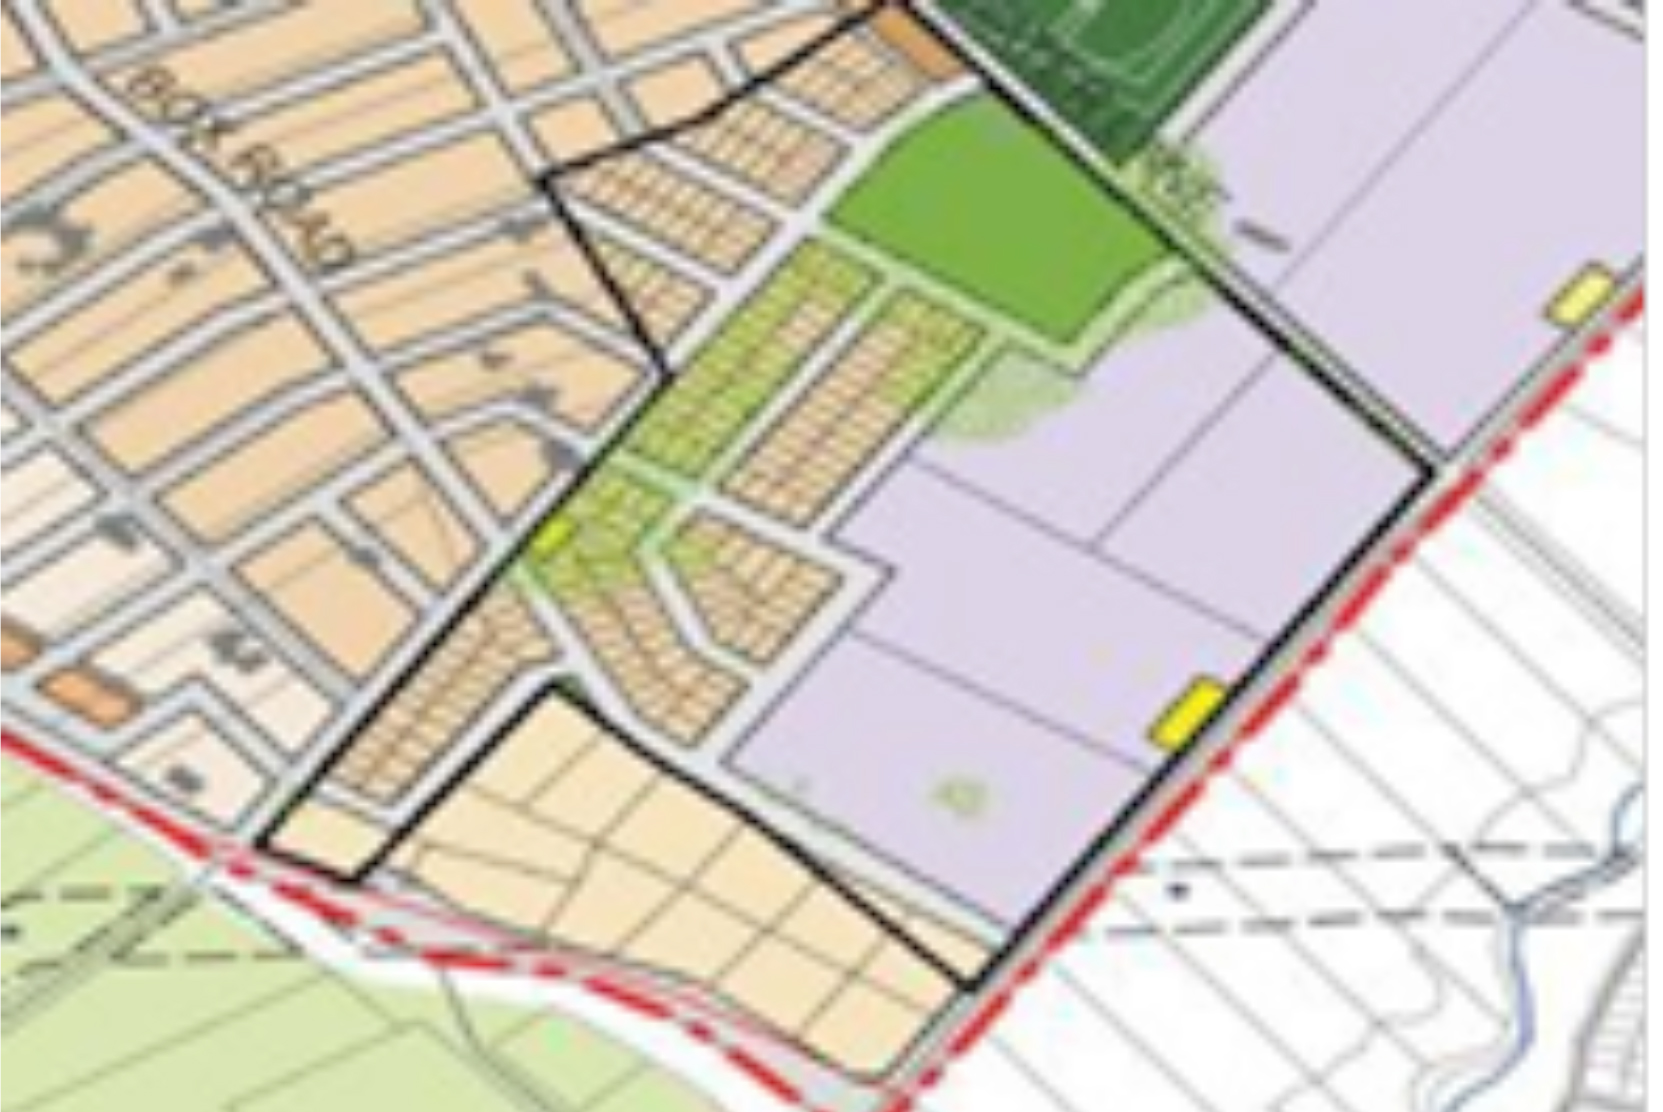 Review of Masterplan, Box Hill